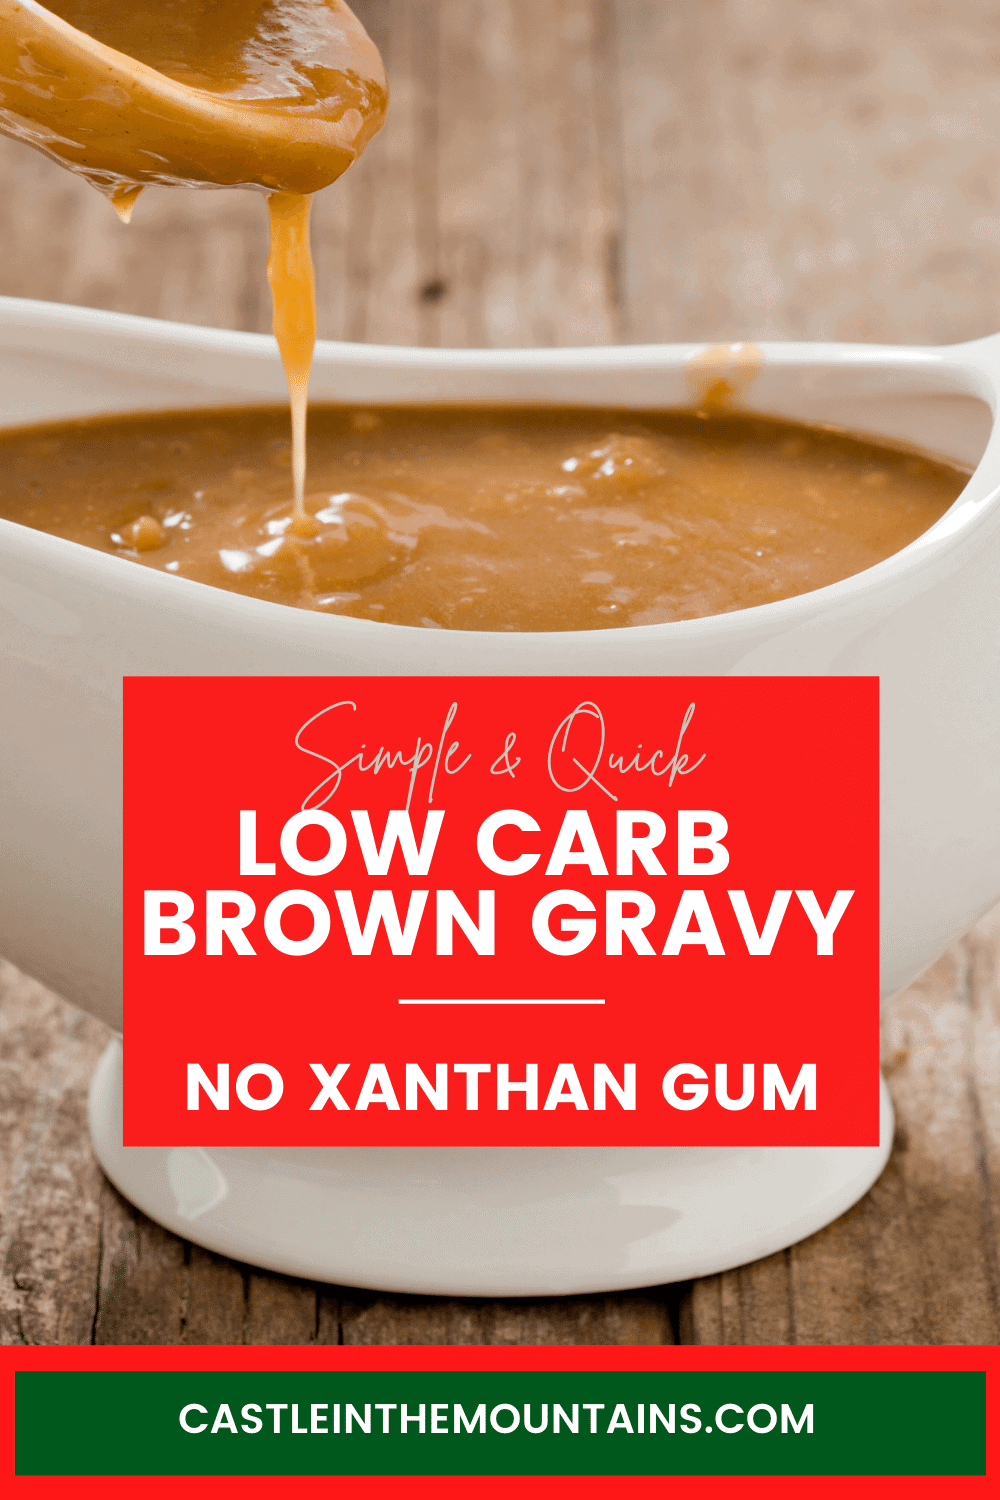 Brown Gravy - How to make Low Carb Gravy without Xanthan Gum